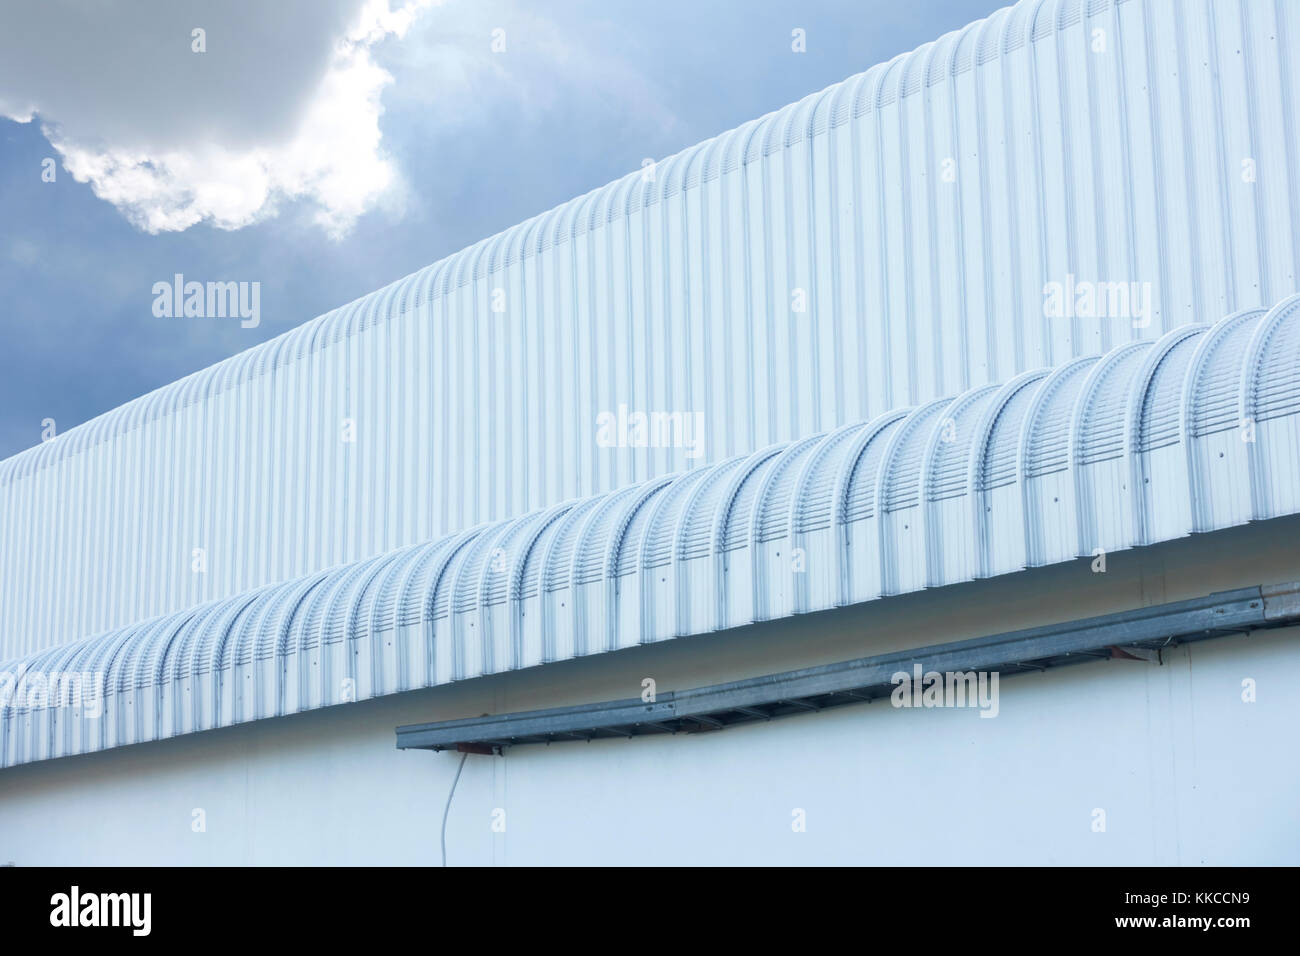 Metal Sheet Roofing Stock Photos Metal Sheet Roofing Stock Images